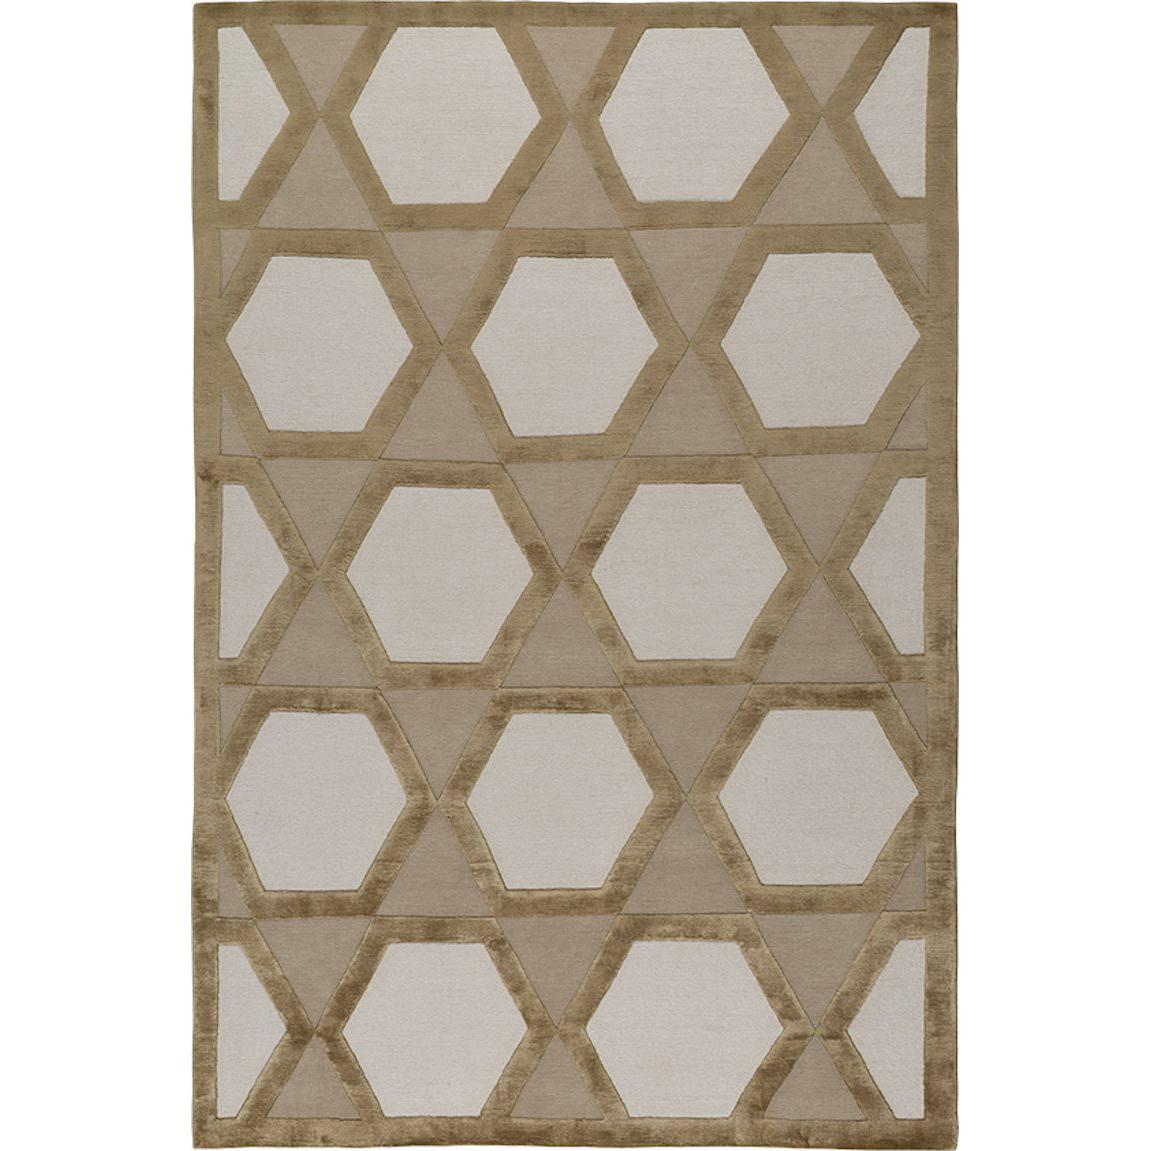 Palermo Hand-Knotted 10x8 Rug in Wool and Silk by Suzanne Sharp